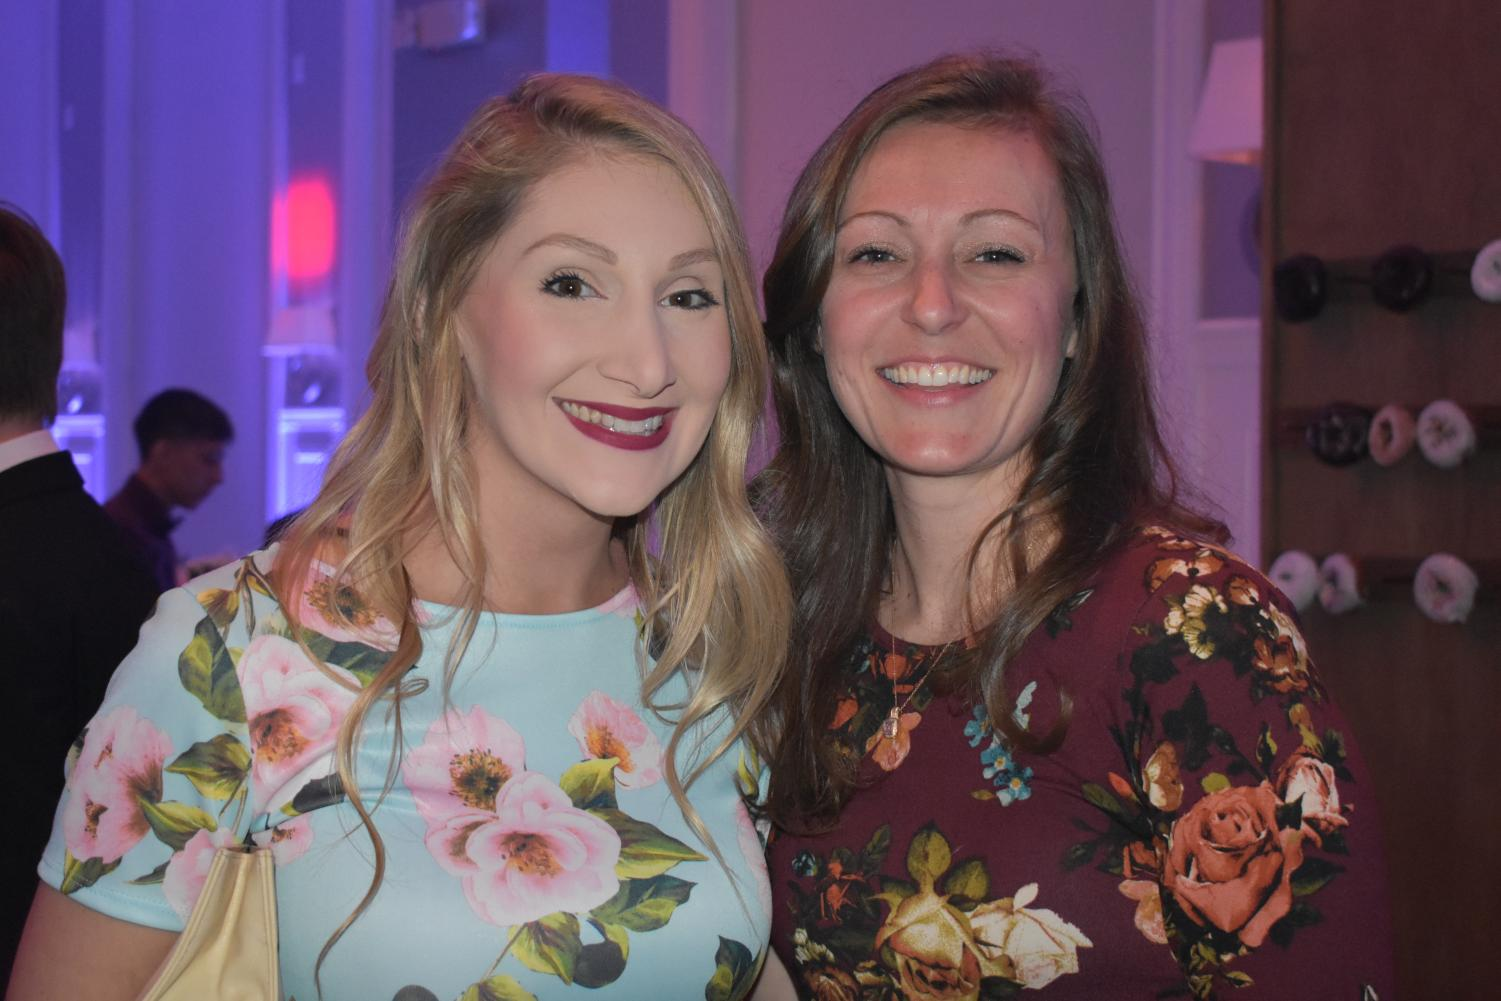 Ms. Schwab and Ms. Sumner enjoy prom 2018